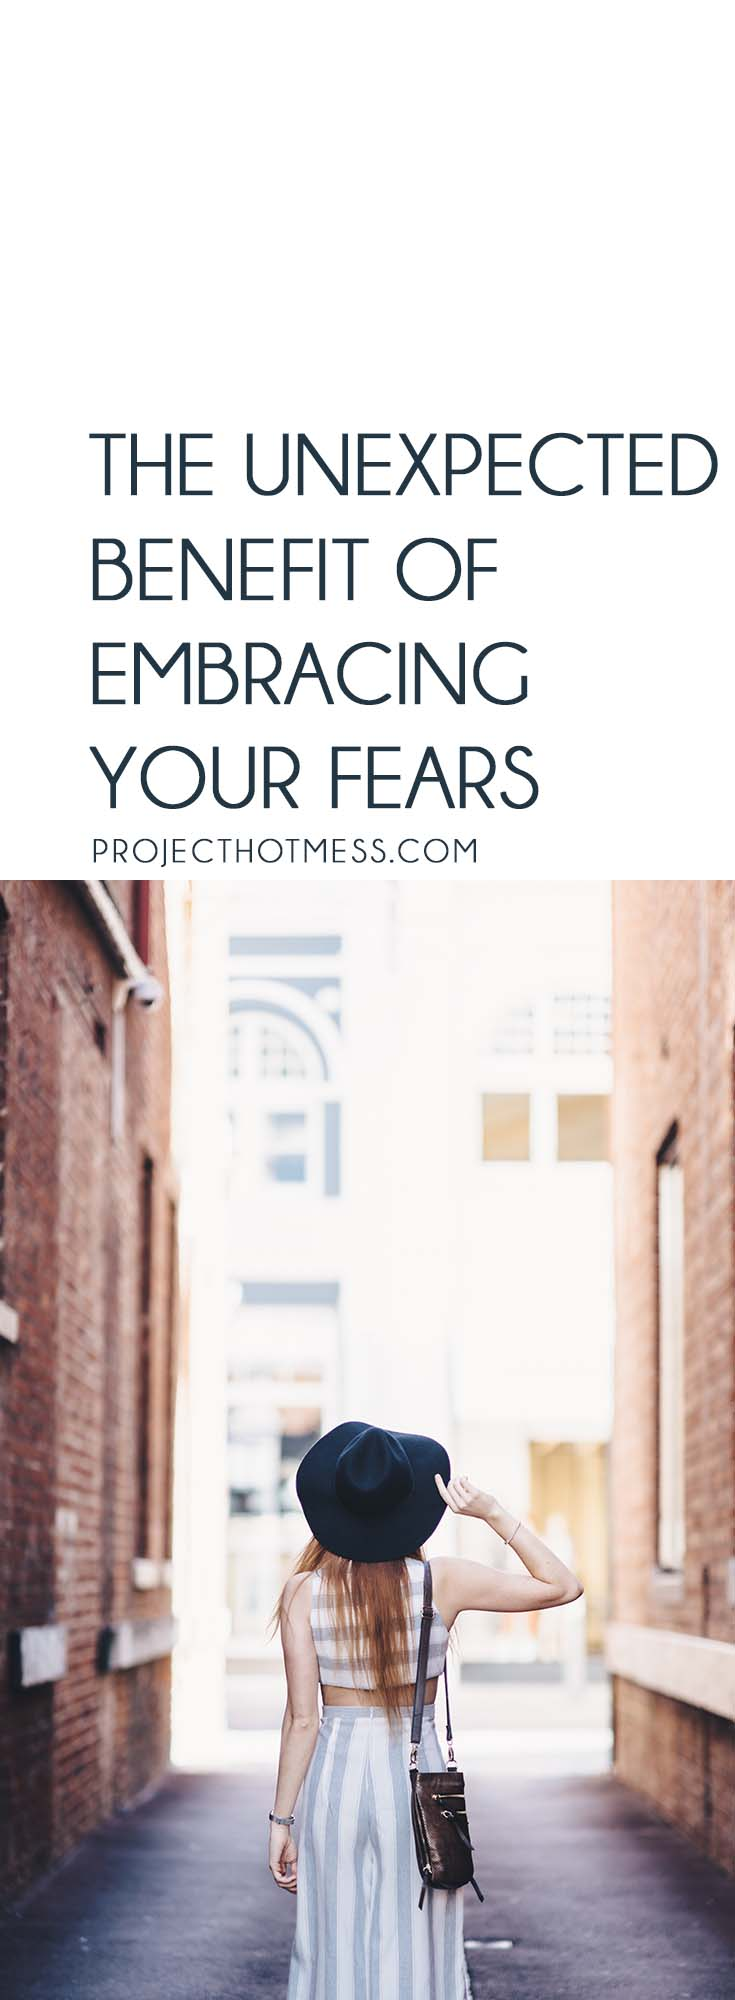 There's no denying we all have things we are scared of and fear. But embracing your fears and using them to your advantage can sometimes be the best option.